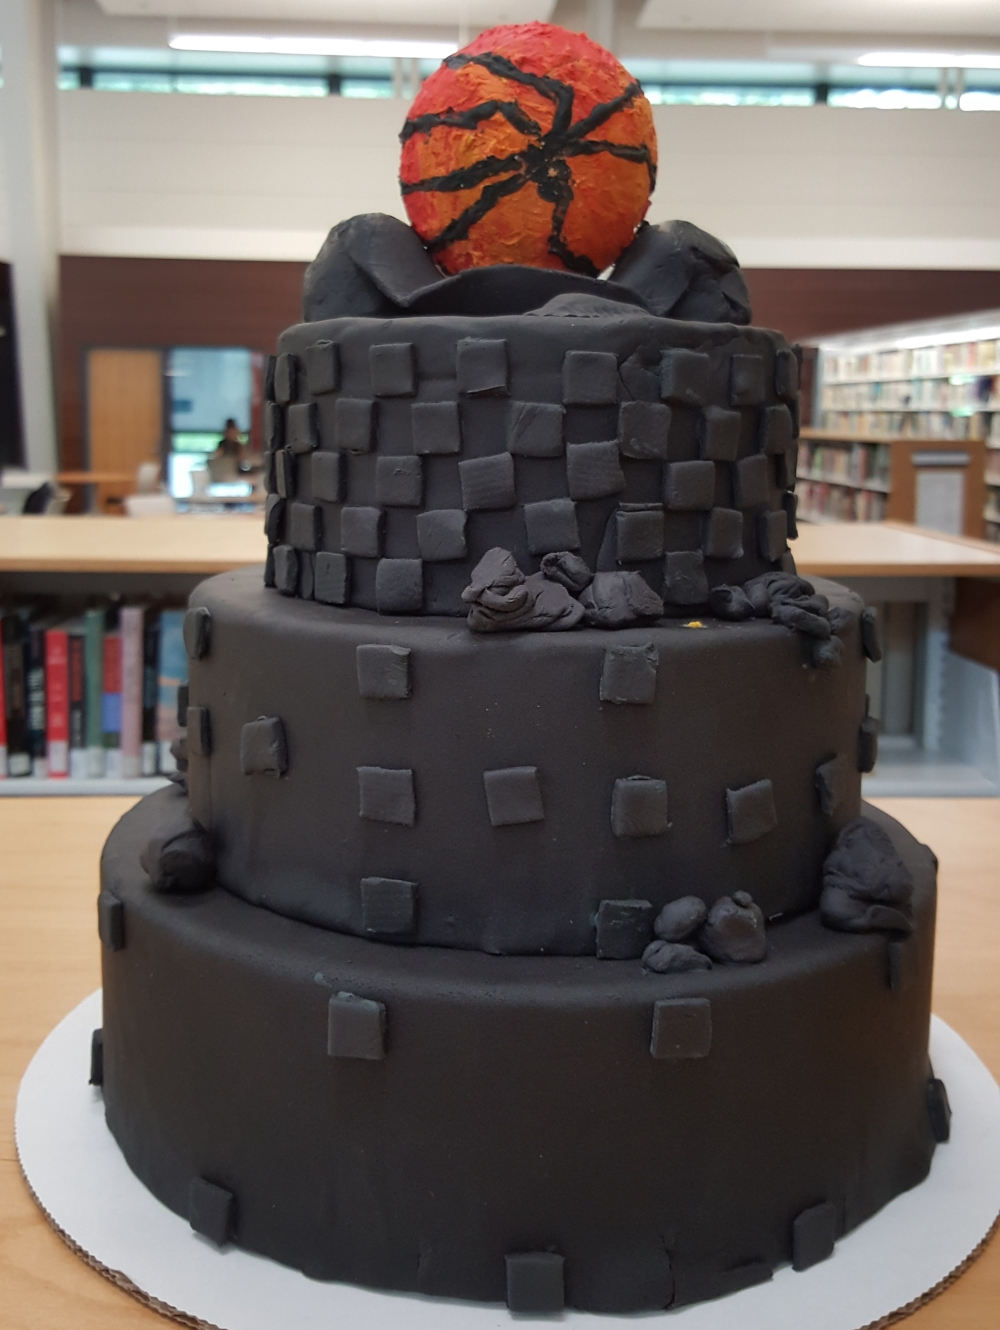 2019 Cakes Eye of Mordor Tower - back view